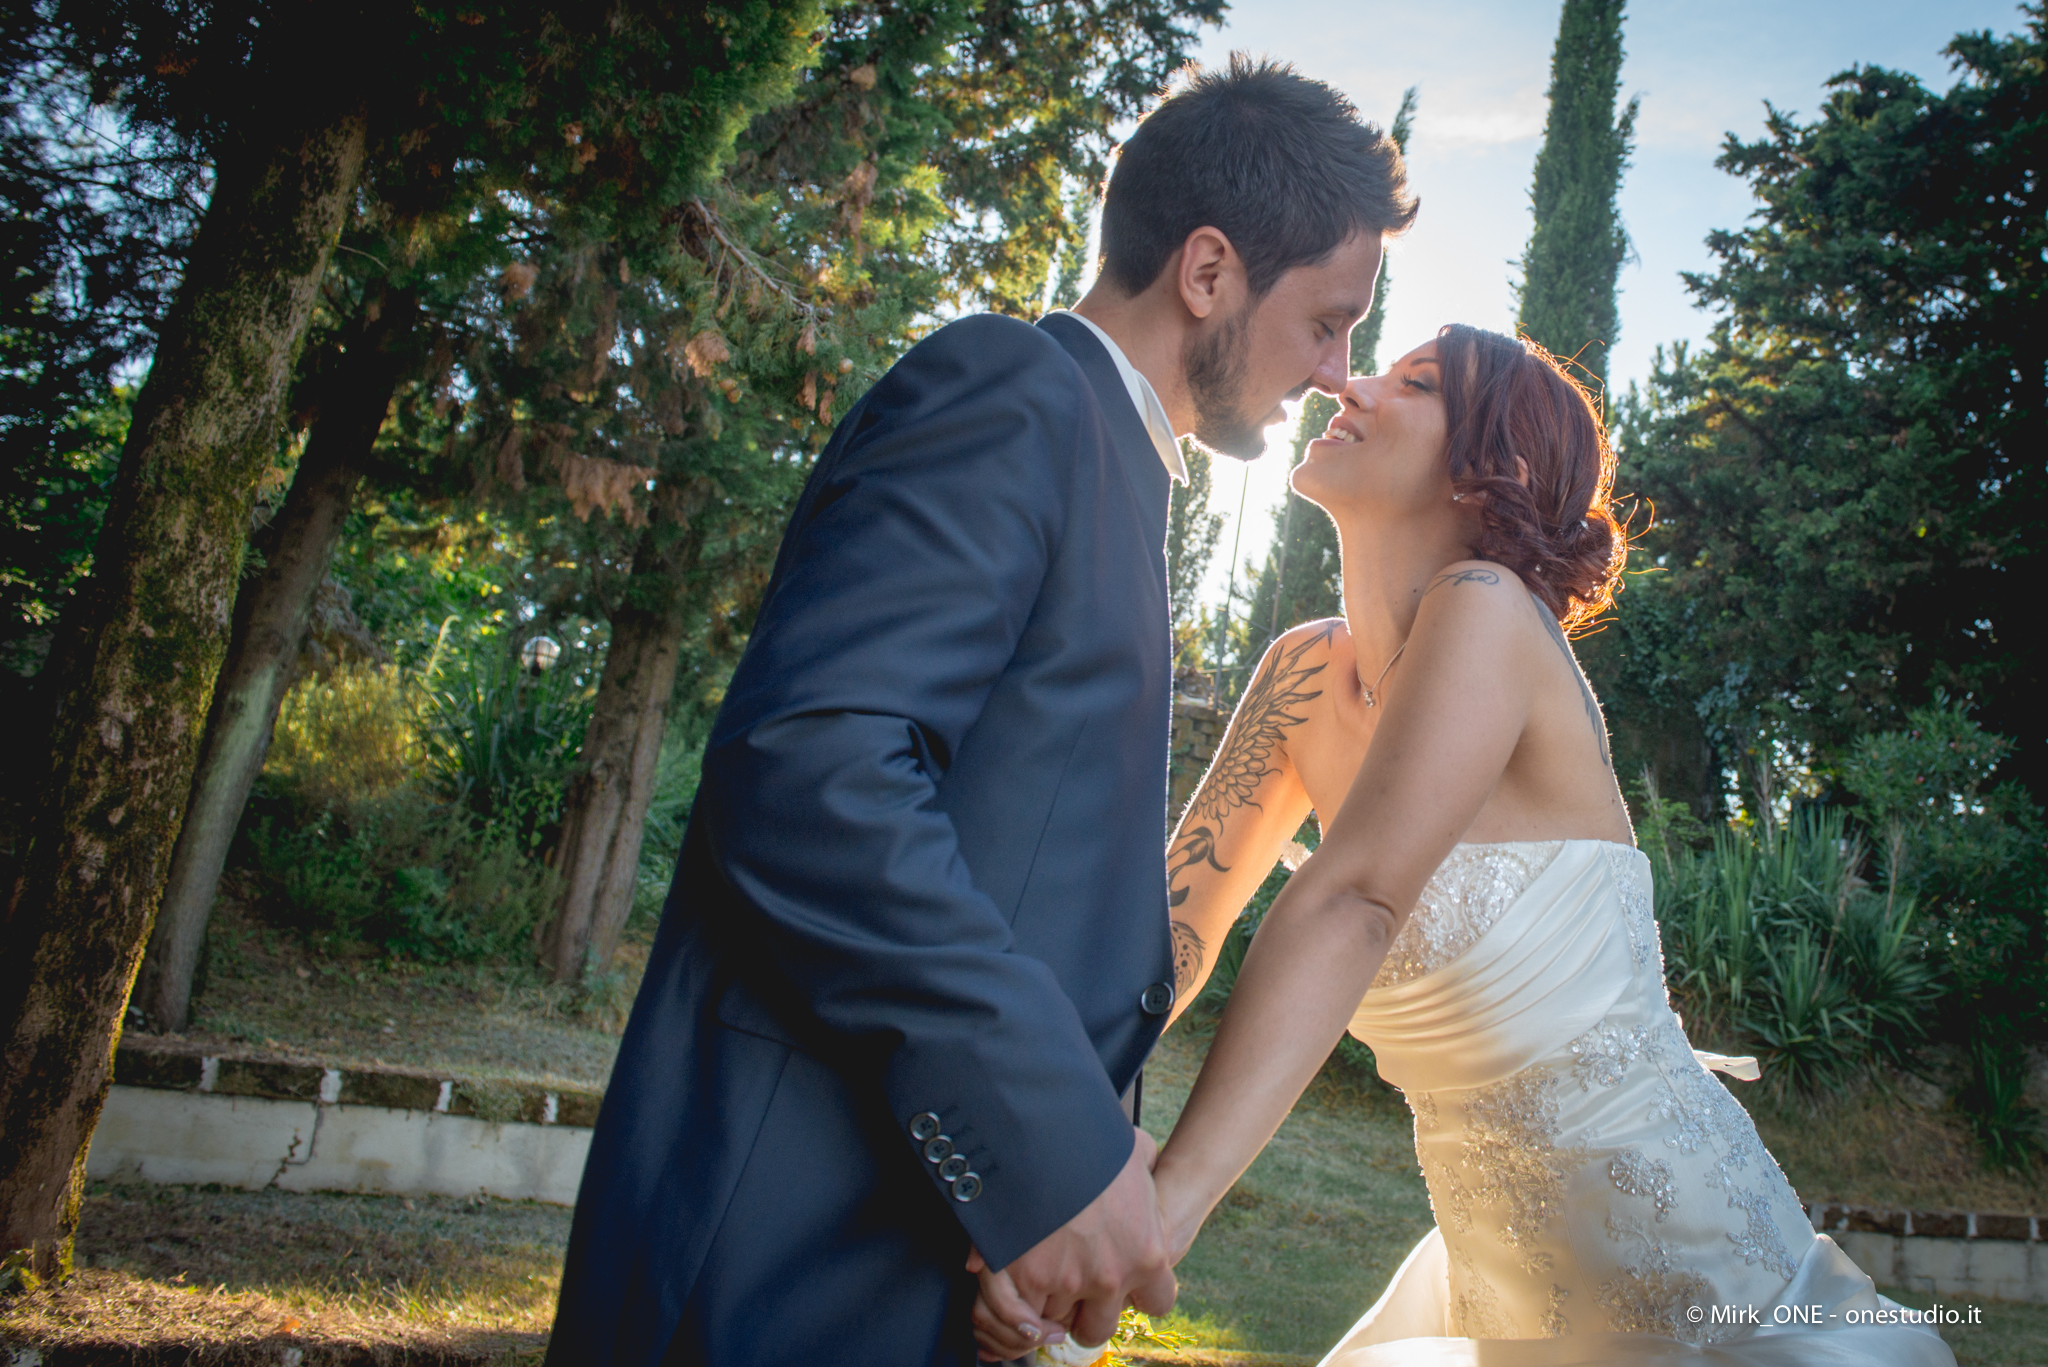 http://lnx.mirkone.it/wp-content/uploads/2015/07/mirk_ONE-fotografo-matrimonio-00815.jpg